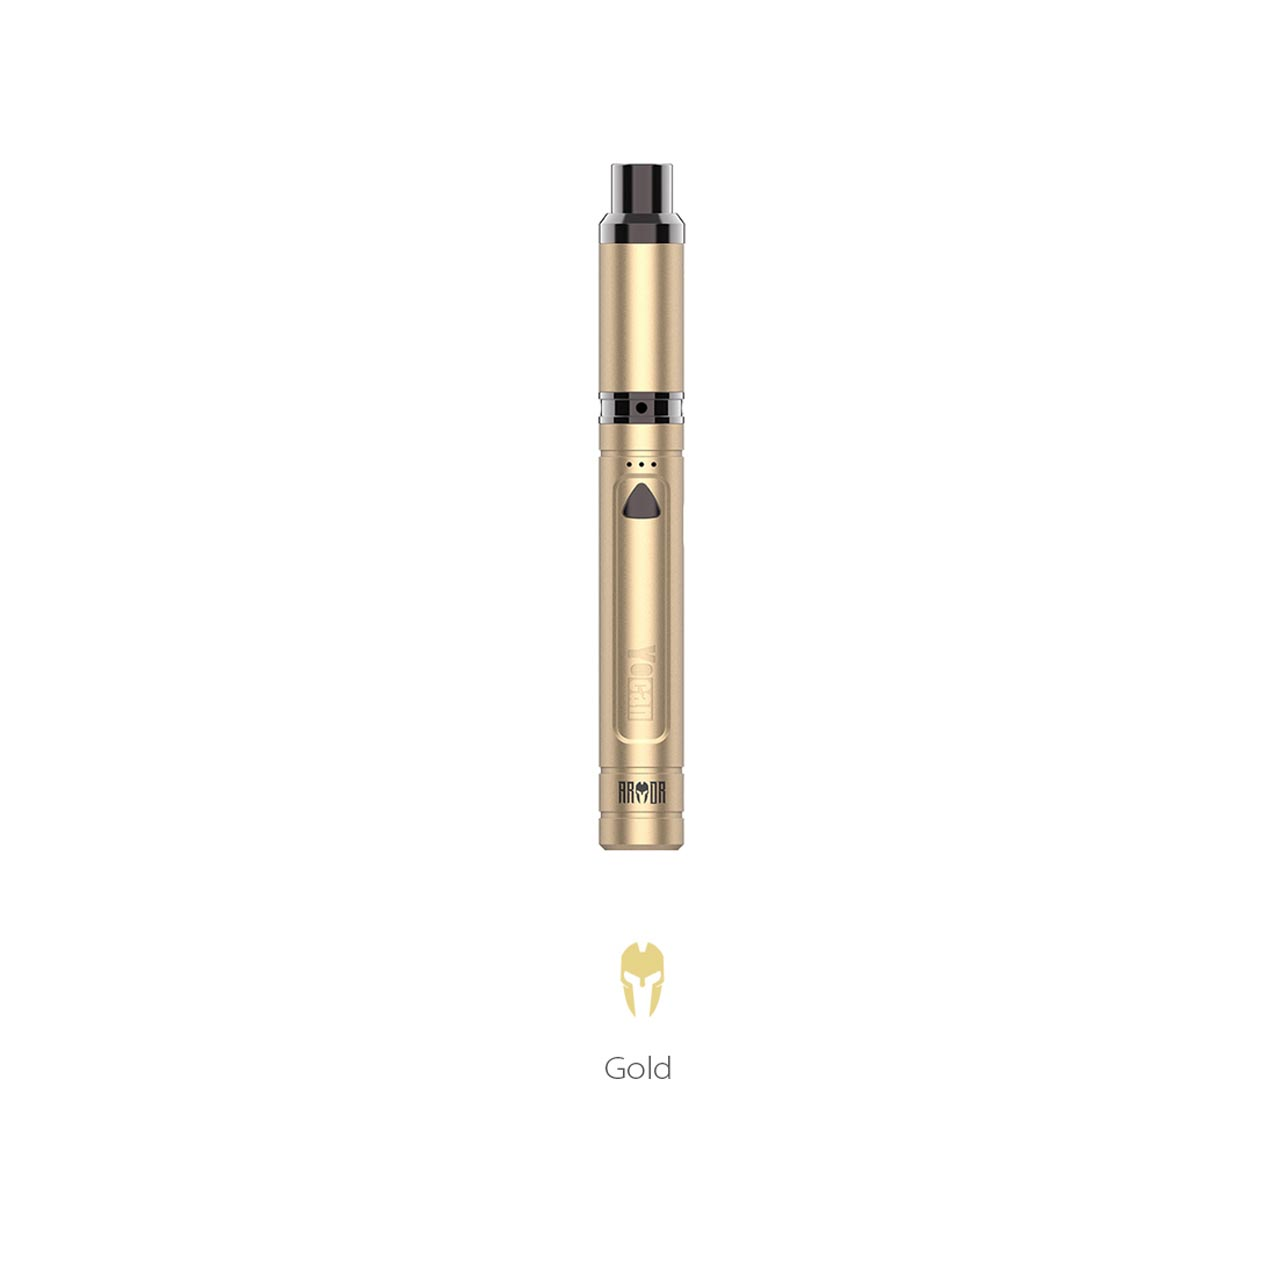 Yocan Armor Kit Wholesale